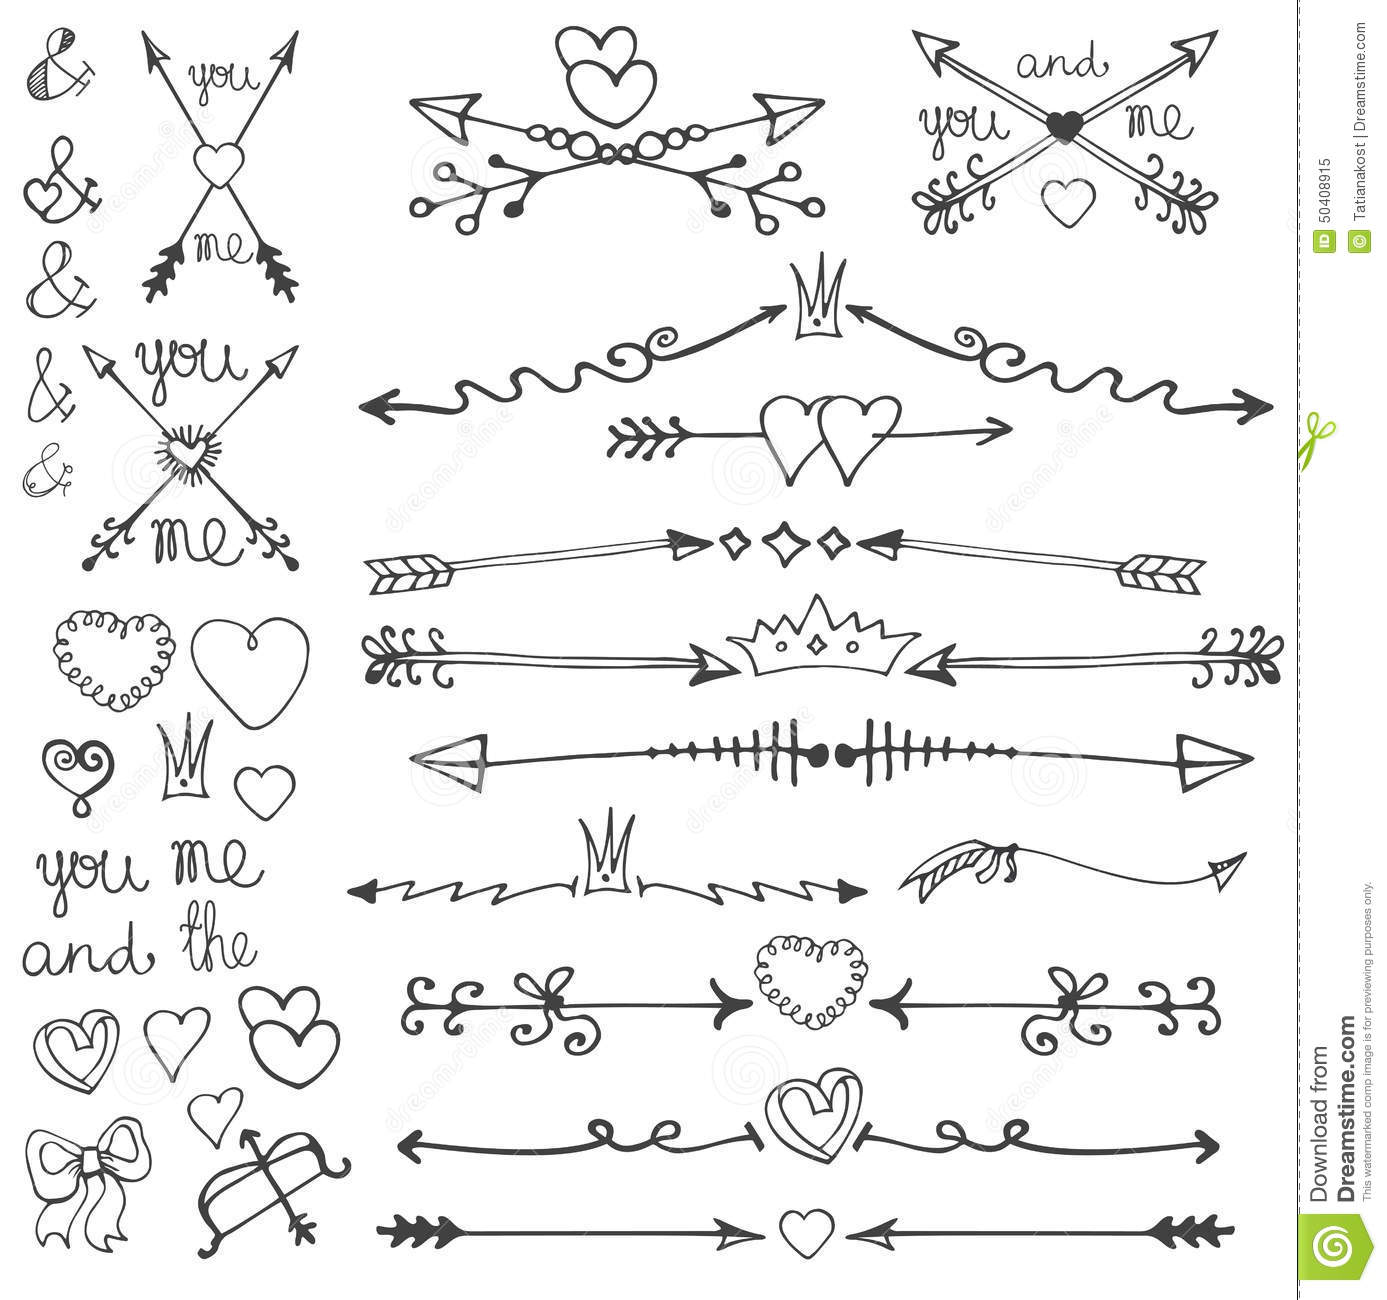 1 tribal arrow clipart graphic freeuse library Tribal arrow clipart heart - ClipartFest graphic freeuse library